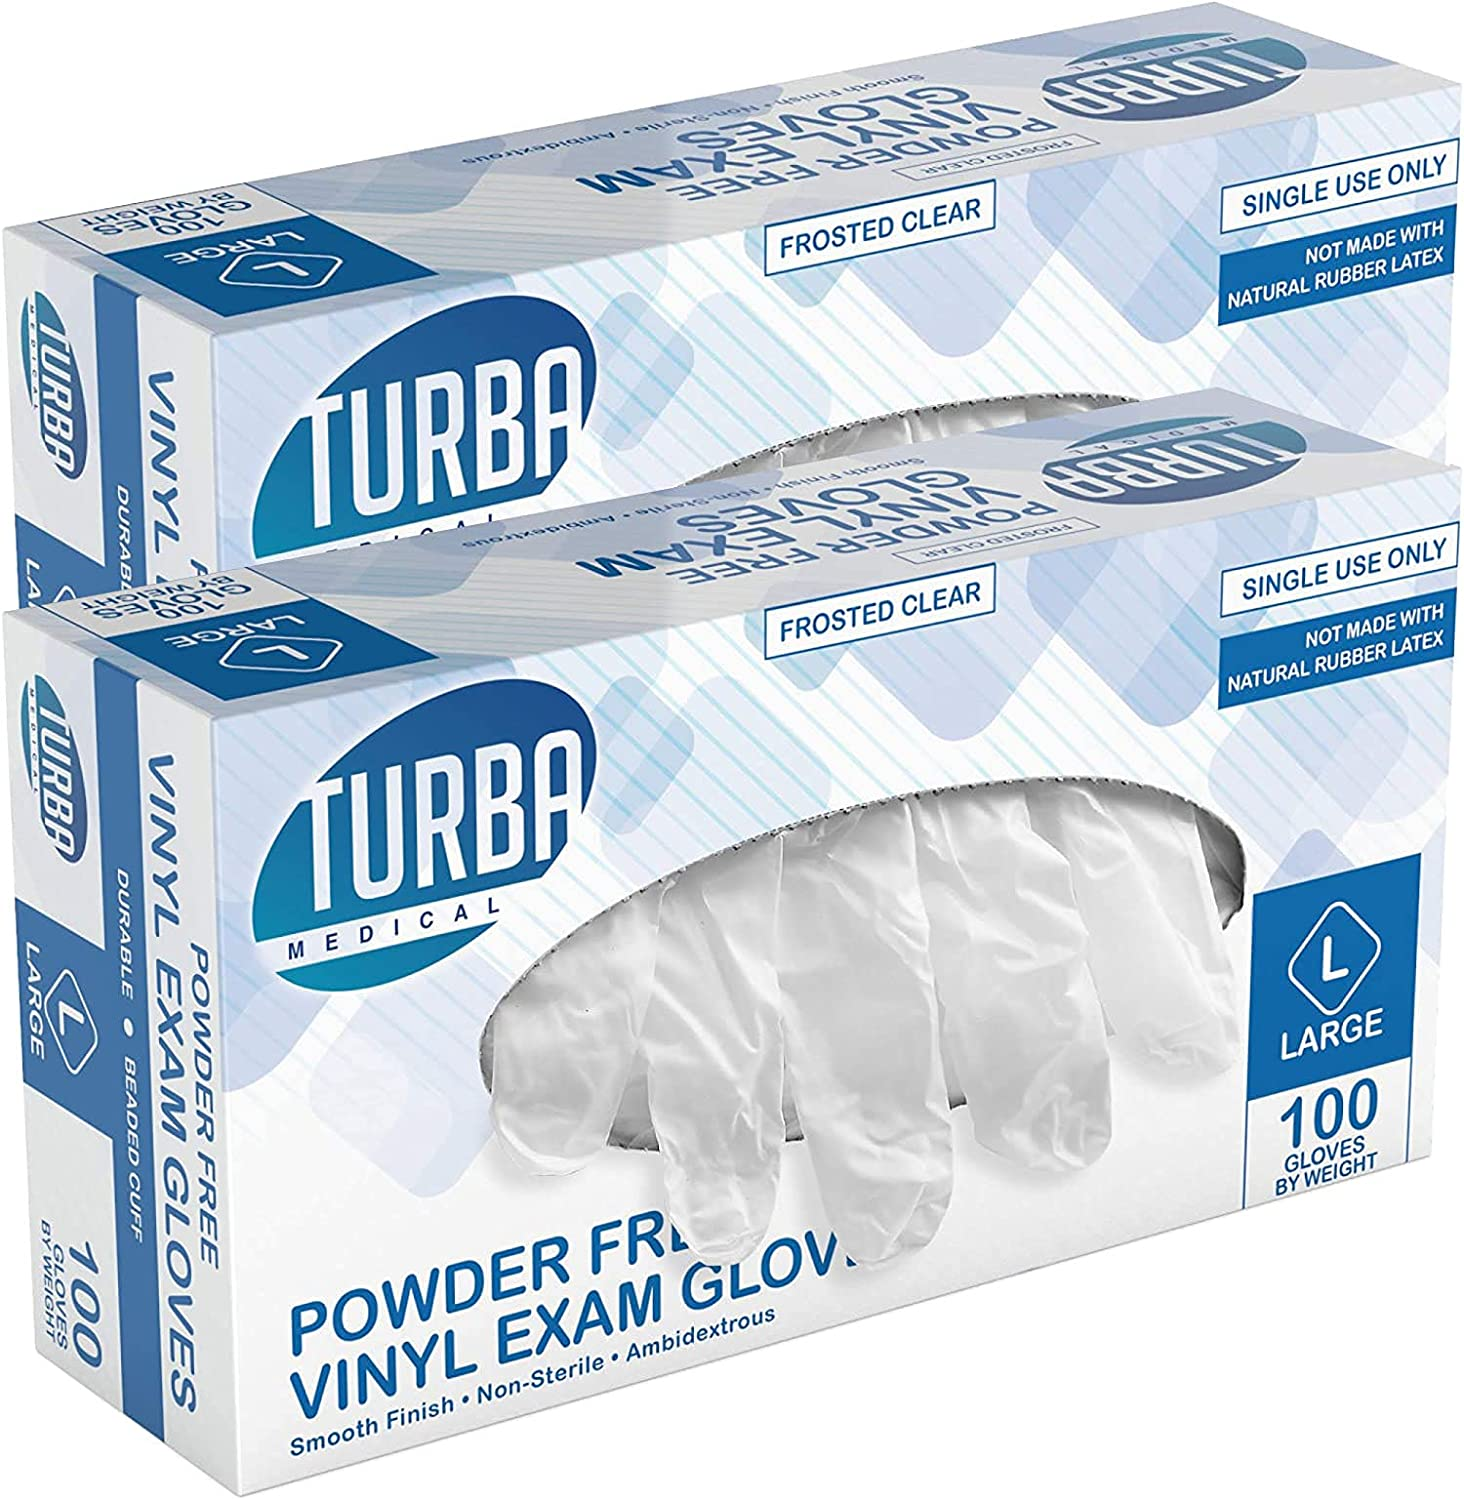 Disposable Vinyl Gloves 200 Non Sterile Powder Latex Free Glove Food Safe -Turba 2 Pack (100) - Large